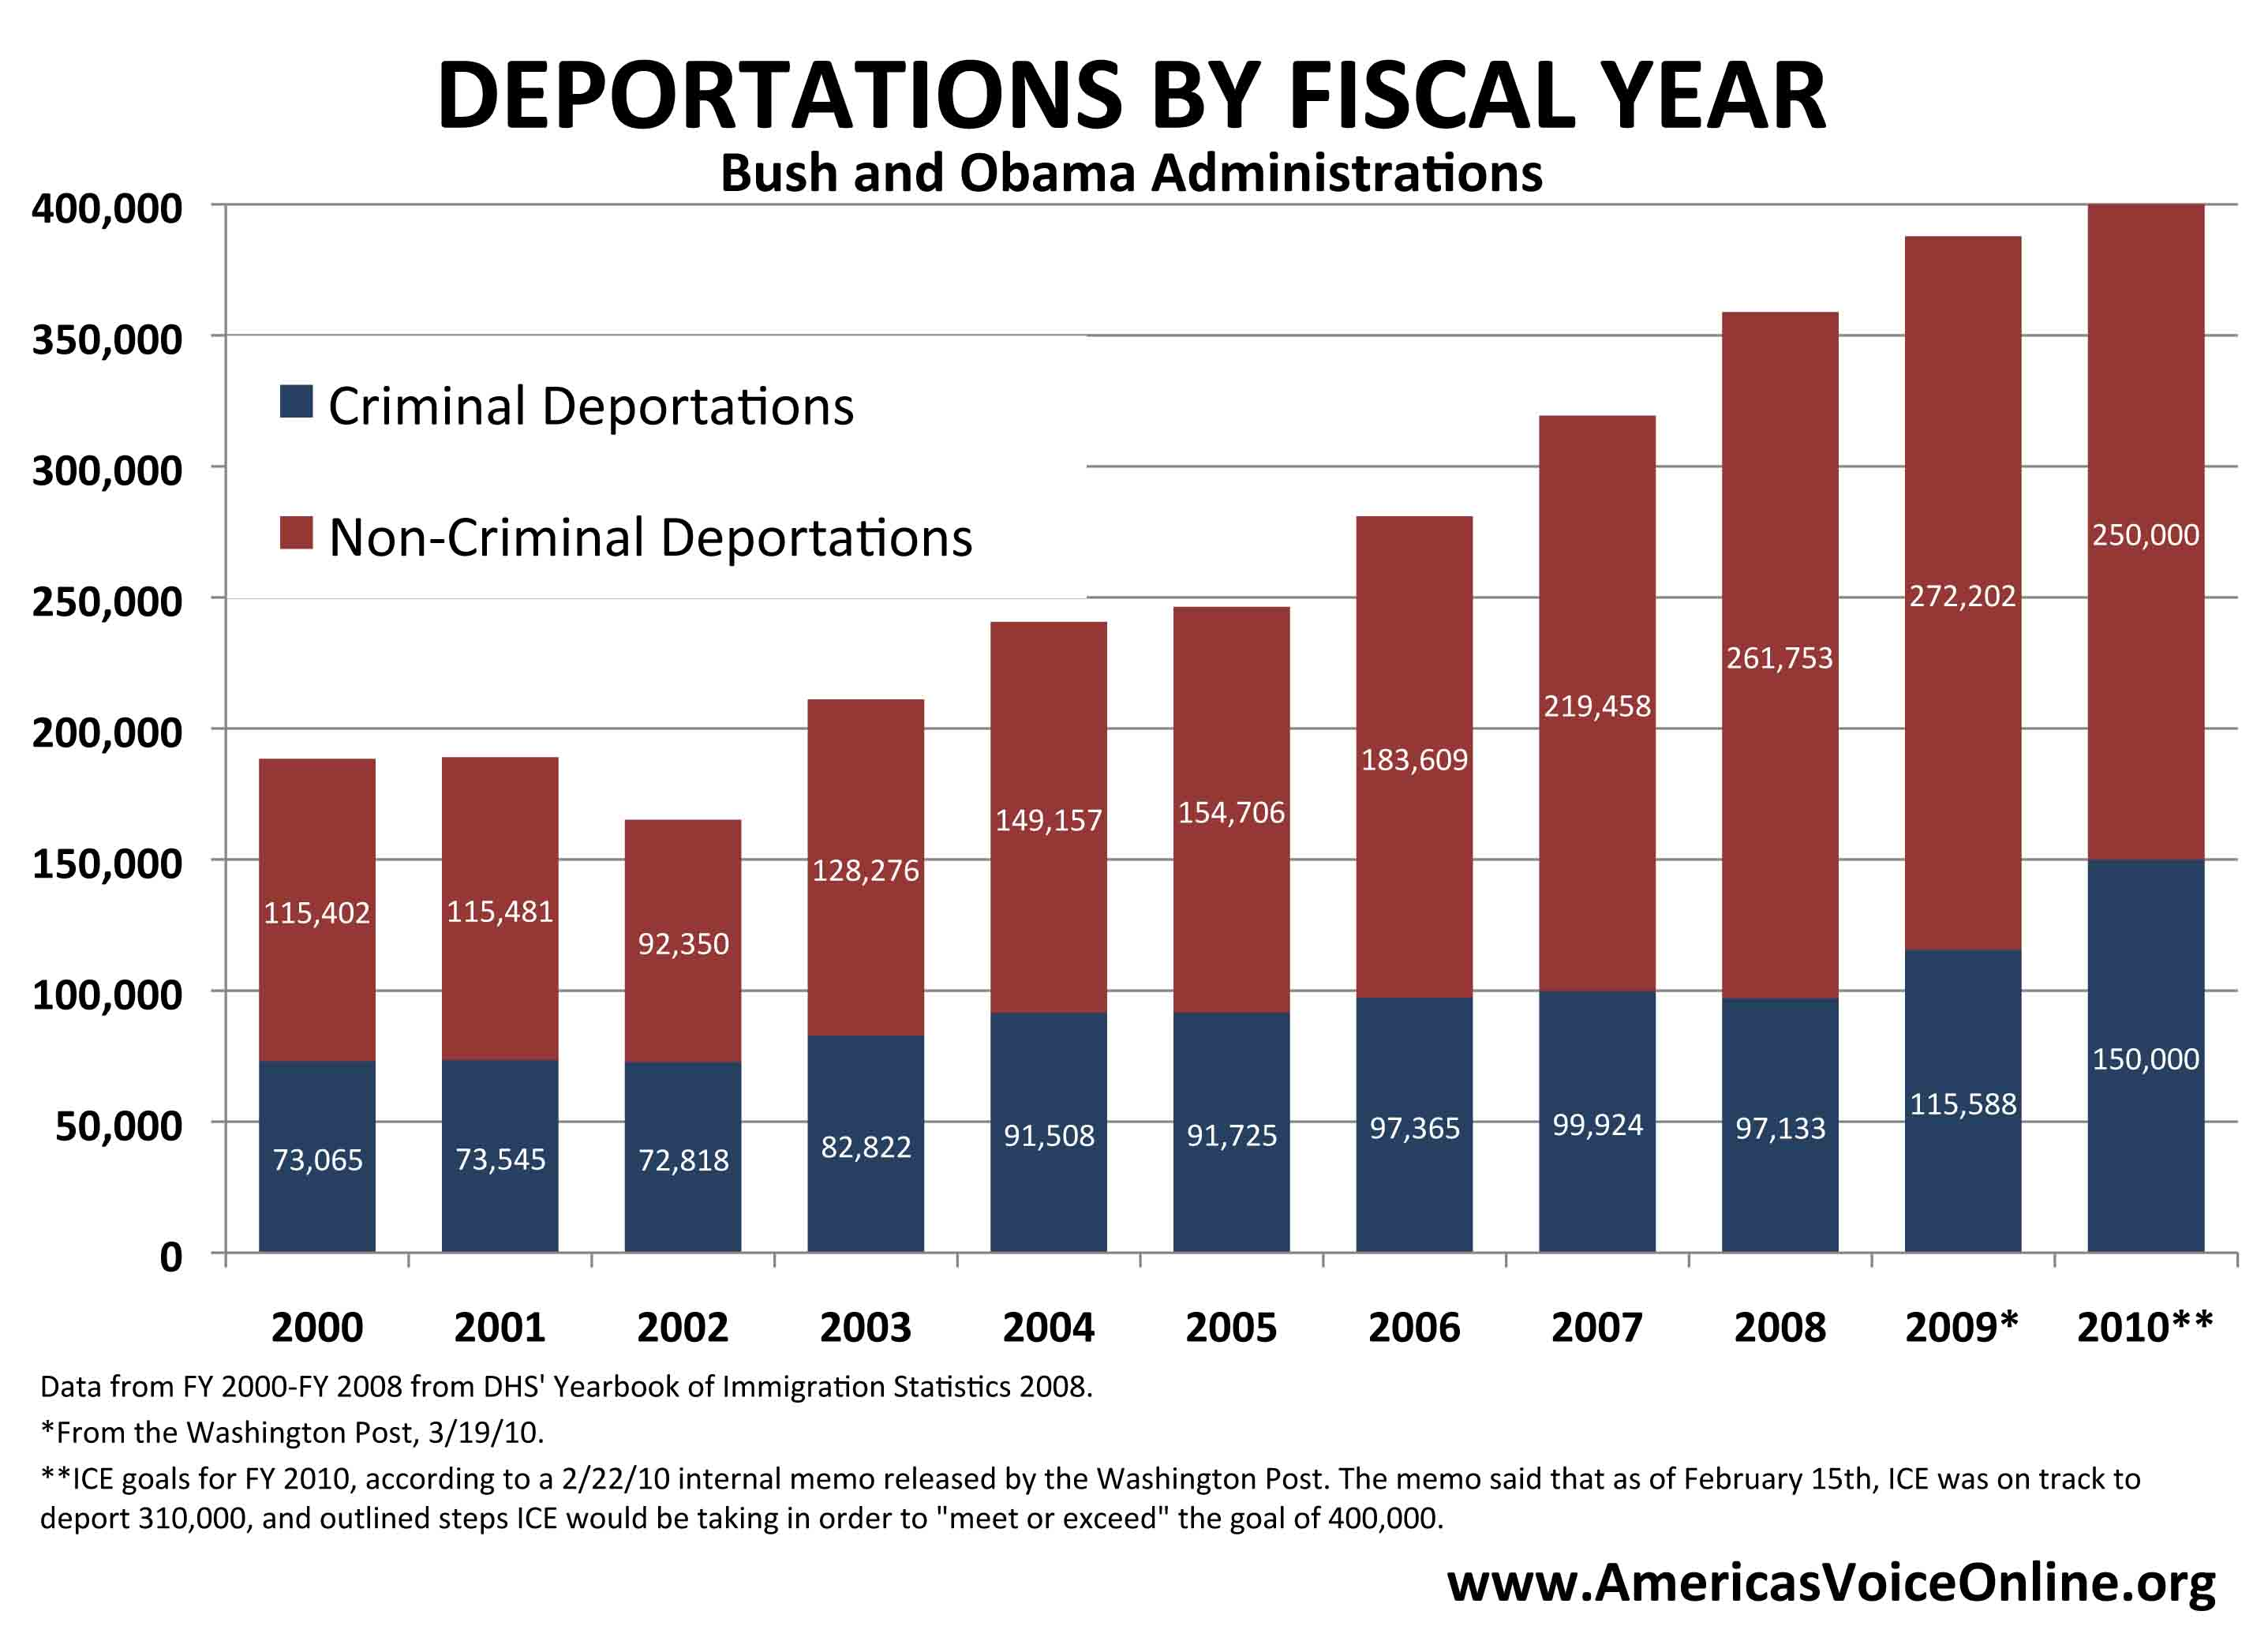 Deportations by Fiscal Year